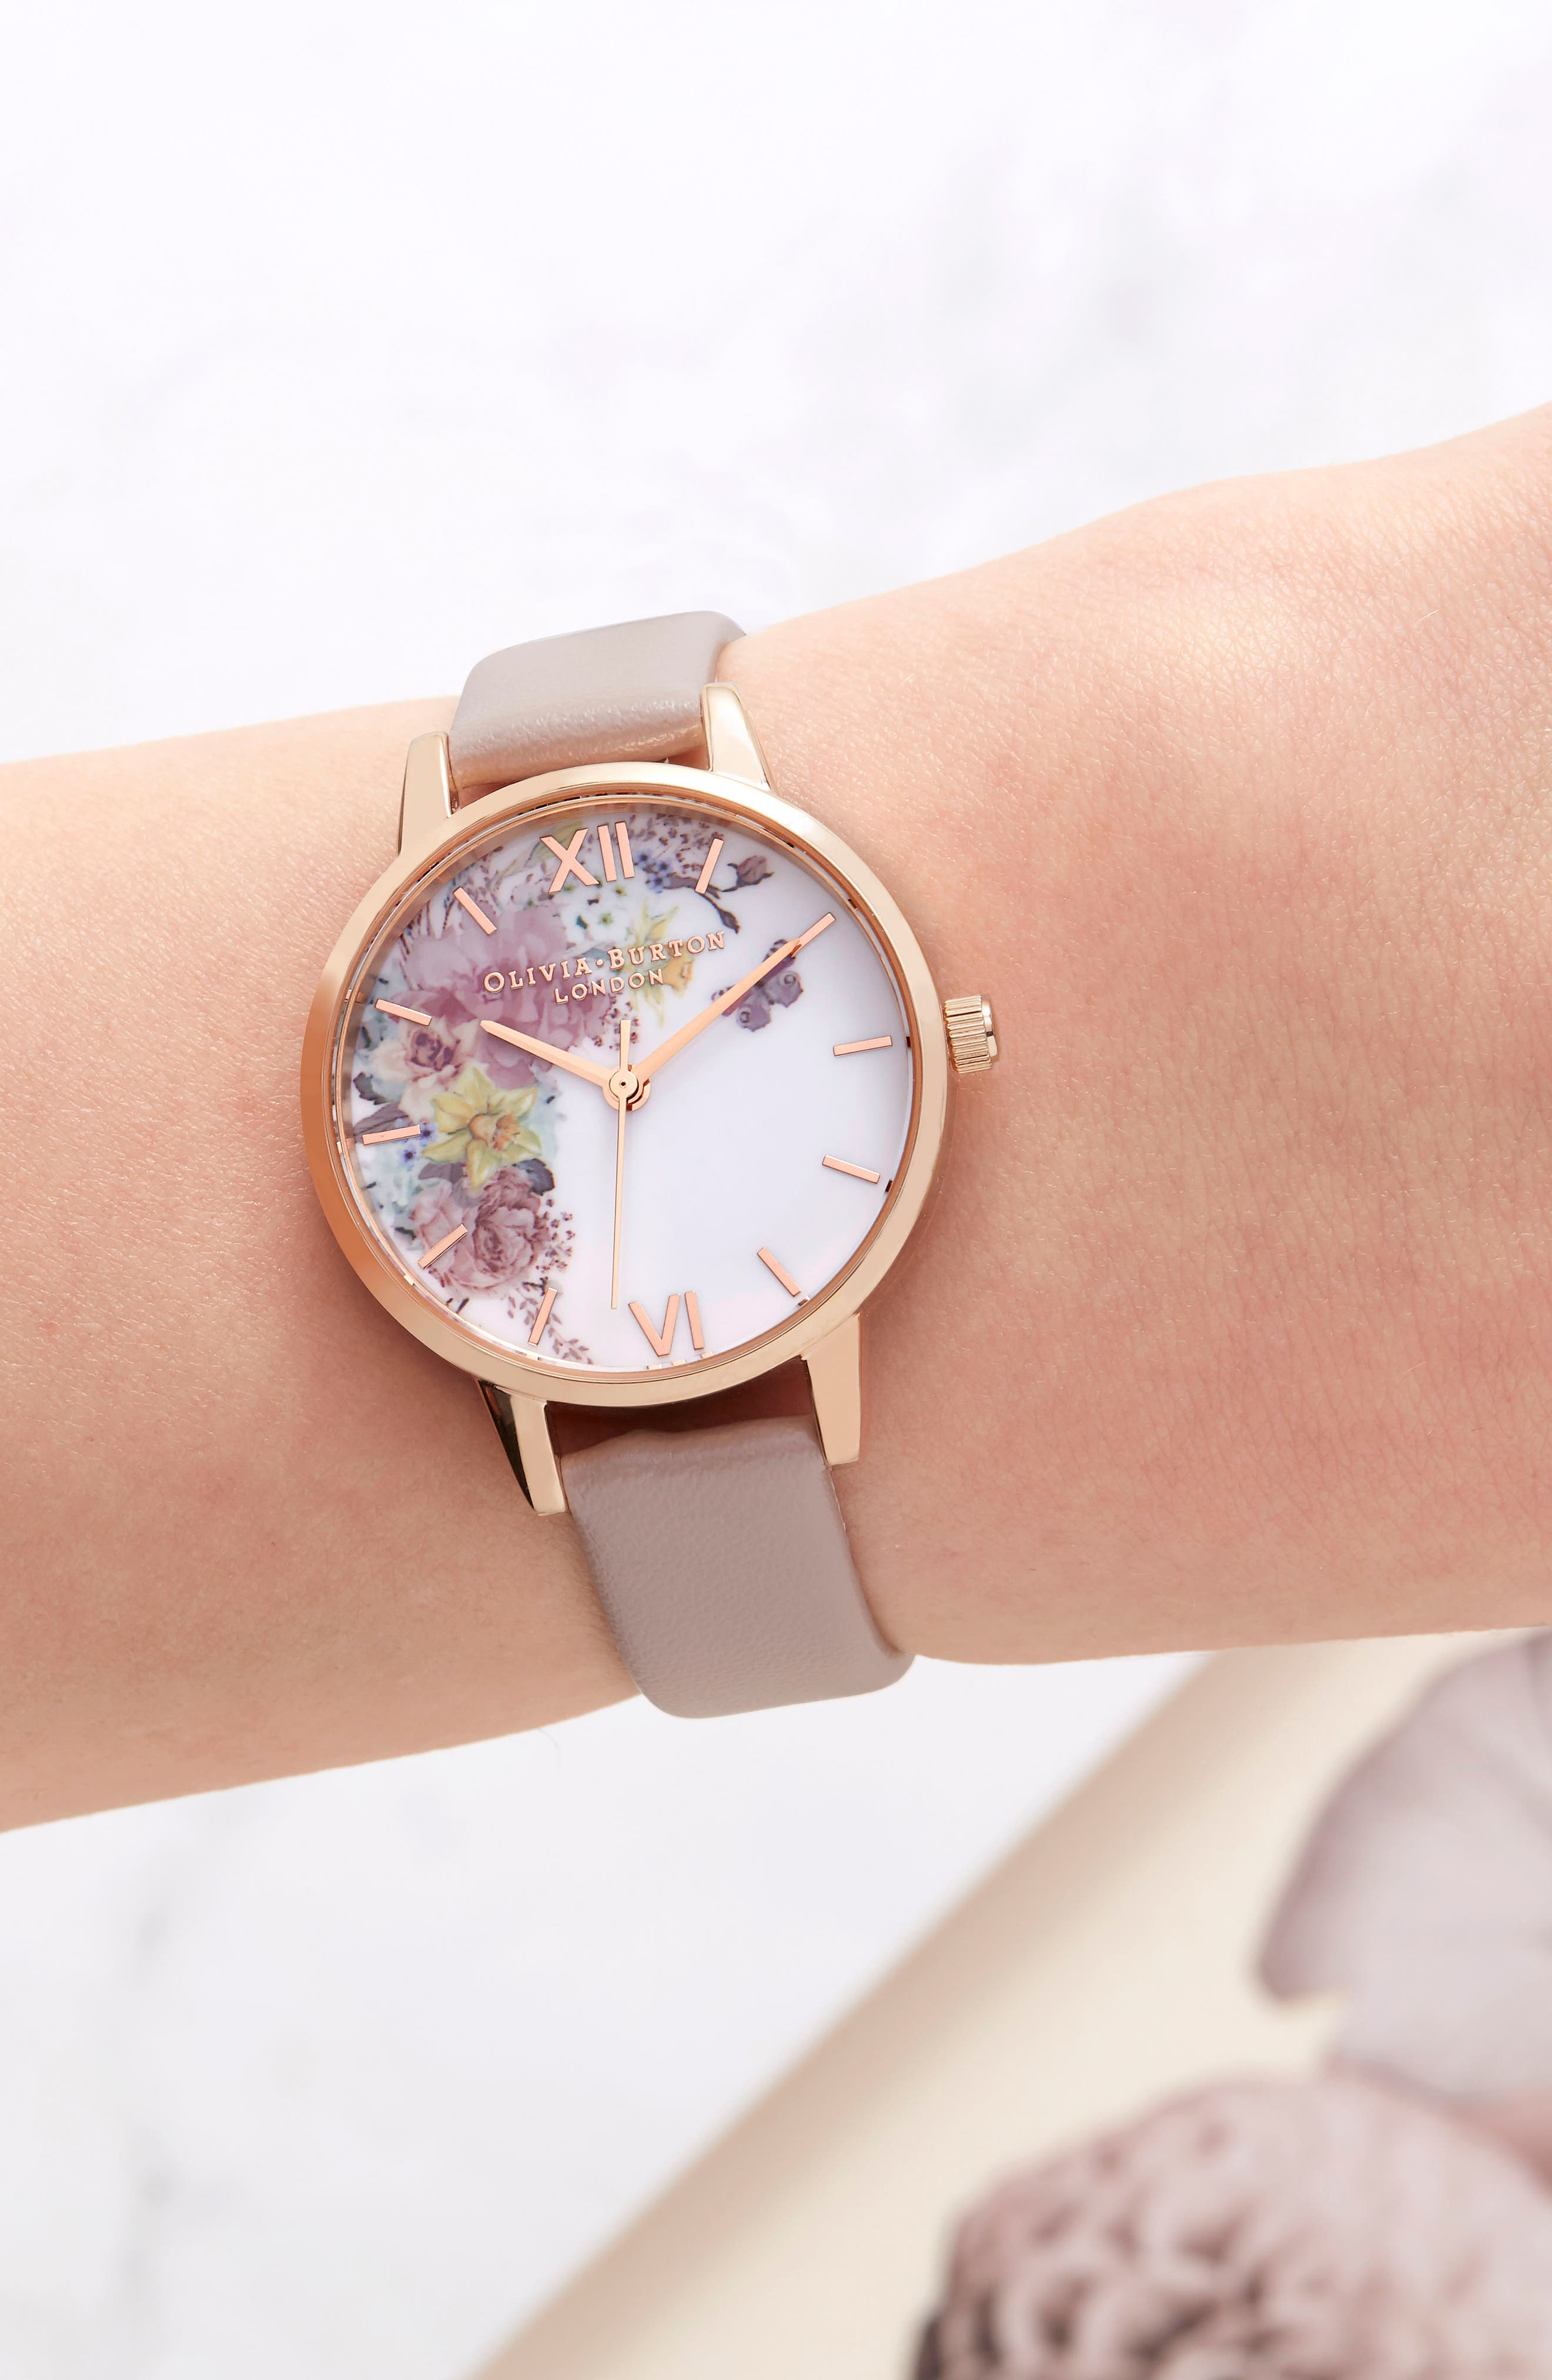 Enchanted Garden Faux Leather Strap Watch, 30mm,                             Alternate thumbnail 6, color,                             SAND/ FLORAL/ ROSE GOLD